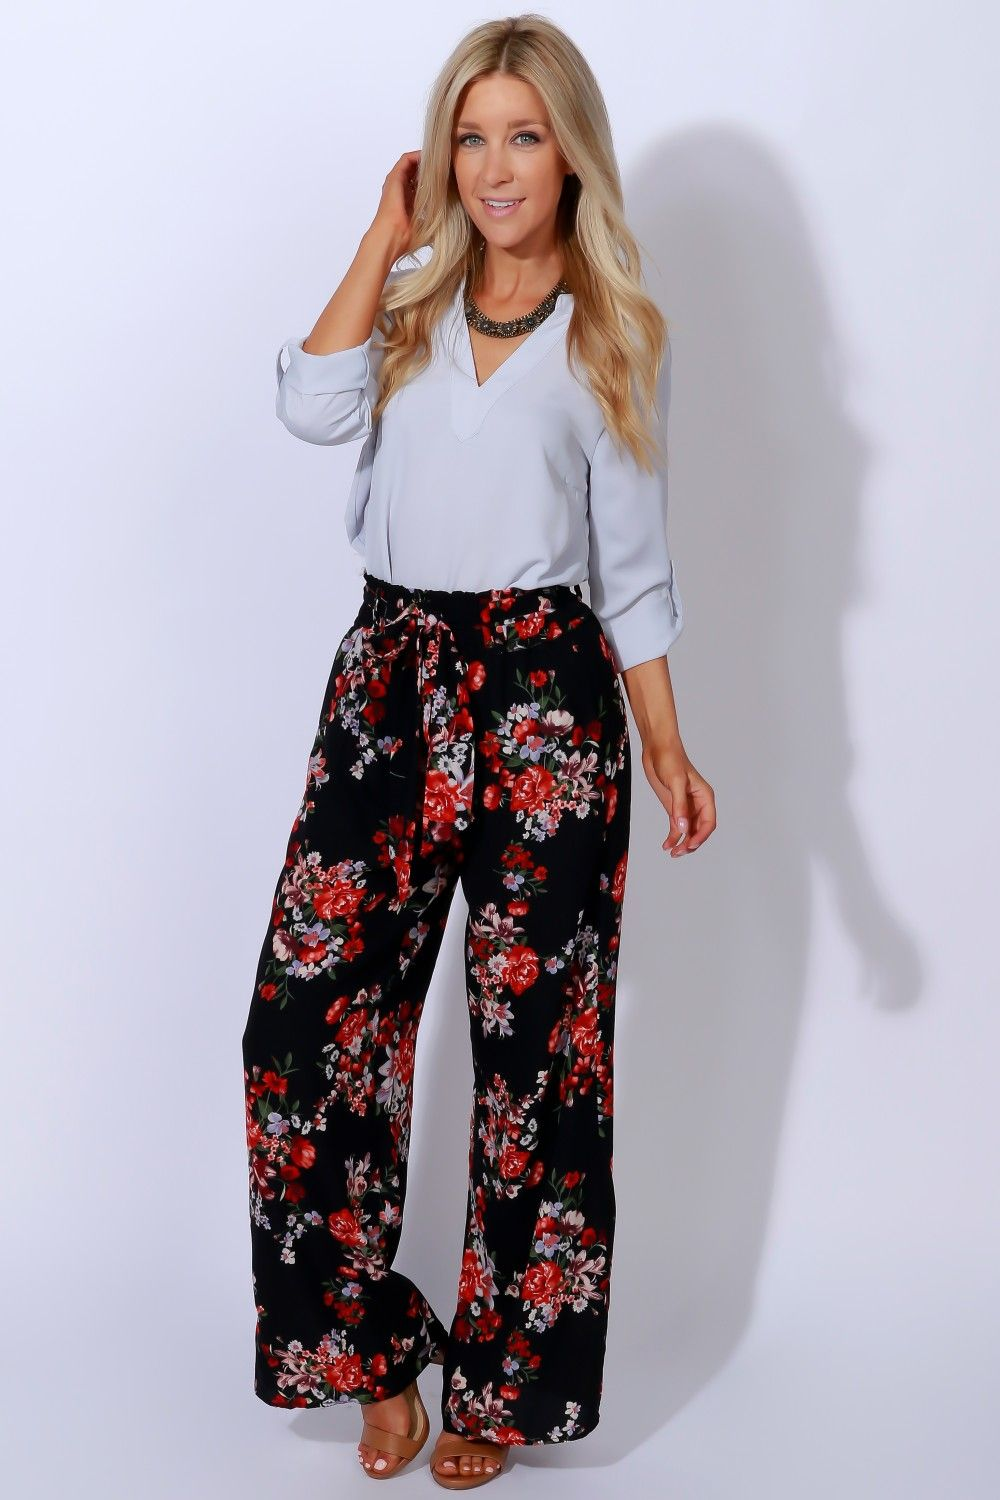 Carry stylish on bags, Fall cute outfits for college